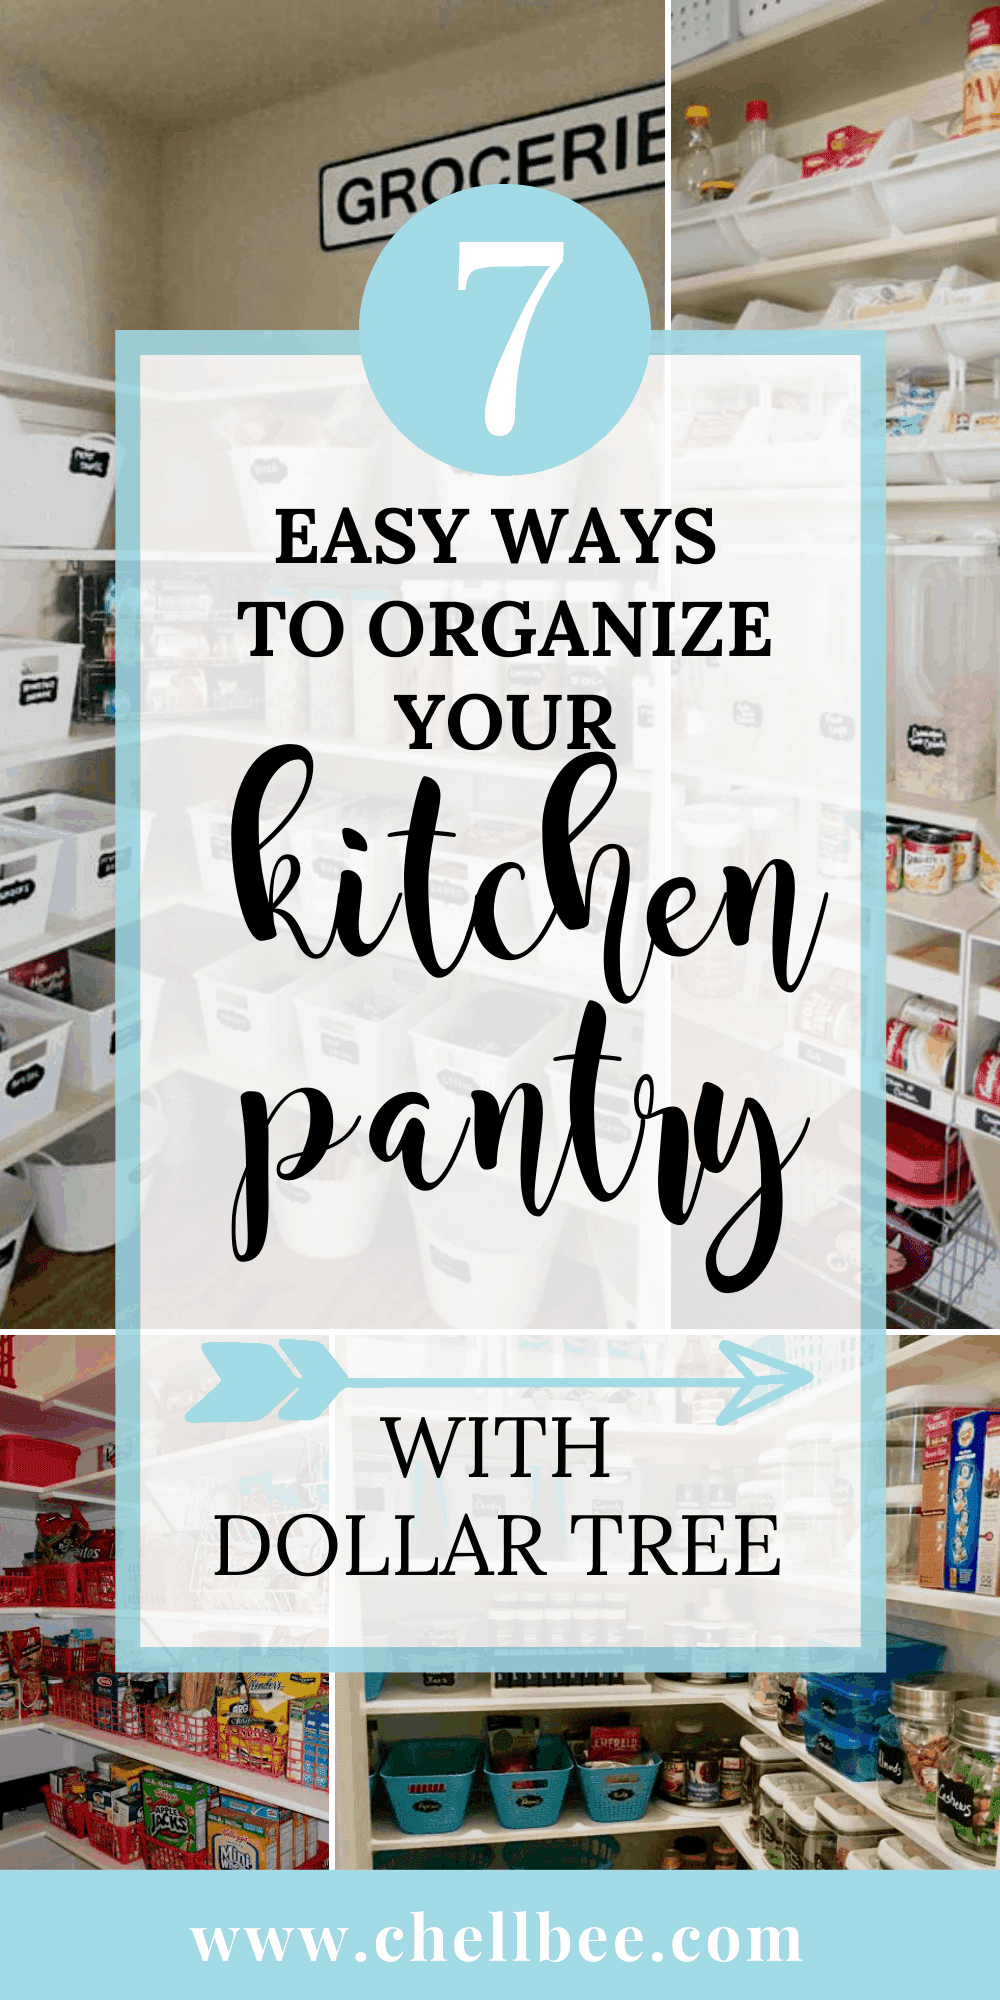 7 Easy Ways To Organize Your Kitchen Pantry With Dollar Tree Kitchen Pantry Small Pantry Organization Dollar Tree Organization